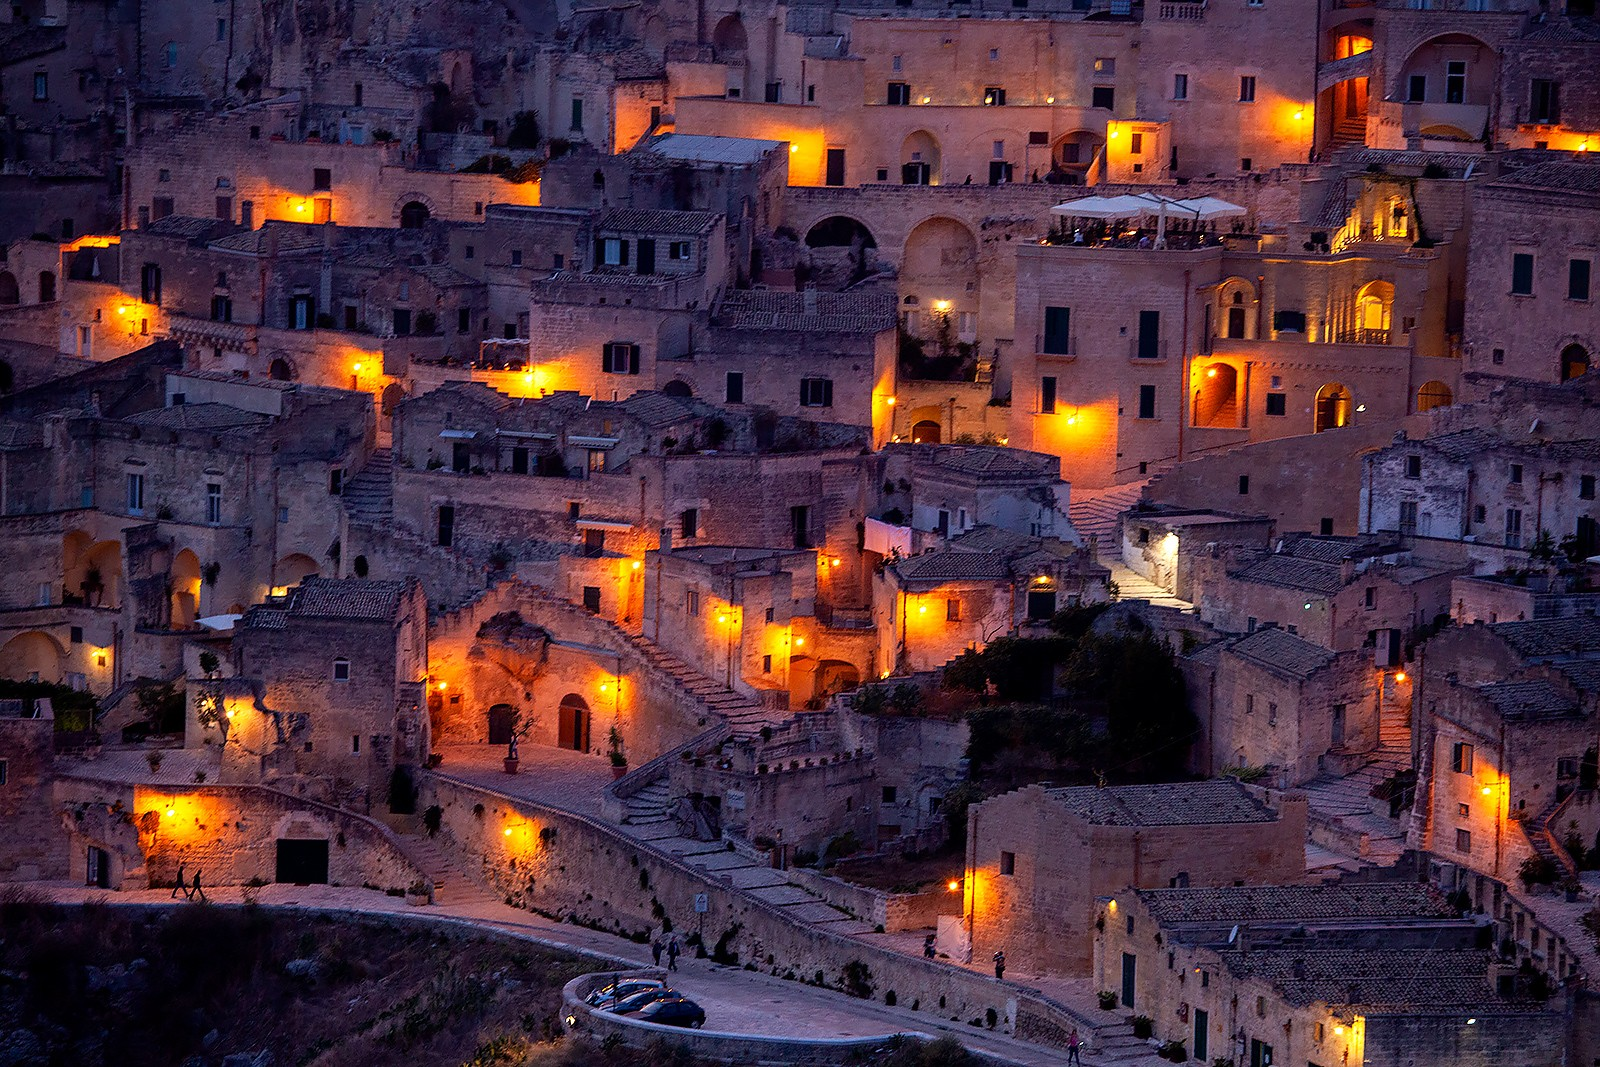 From sunrise to sunset. Matera